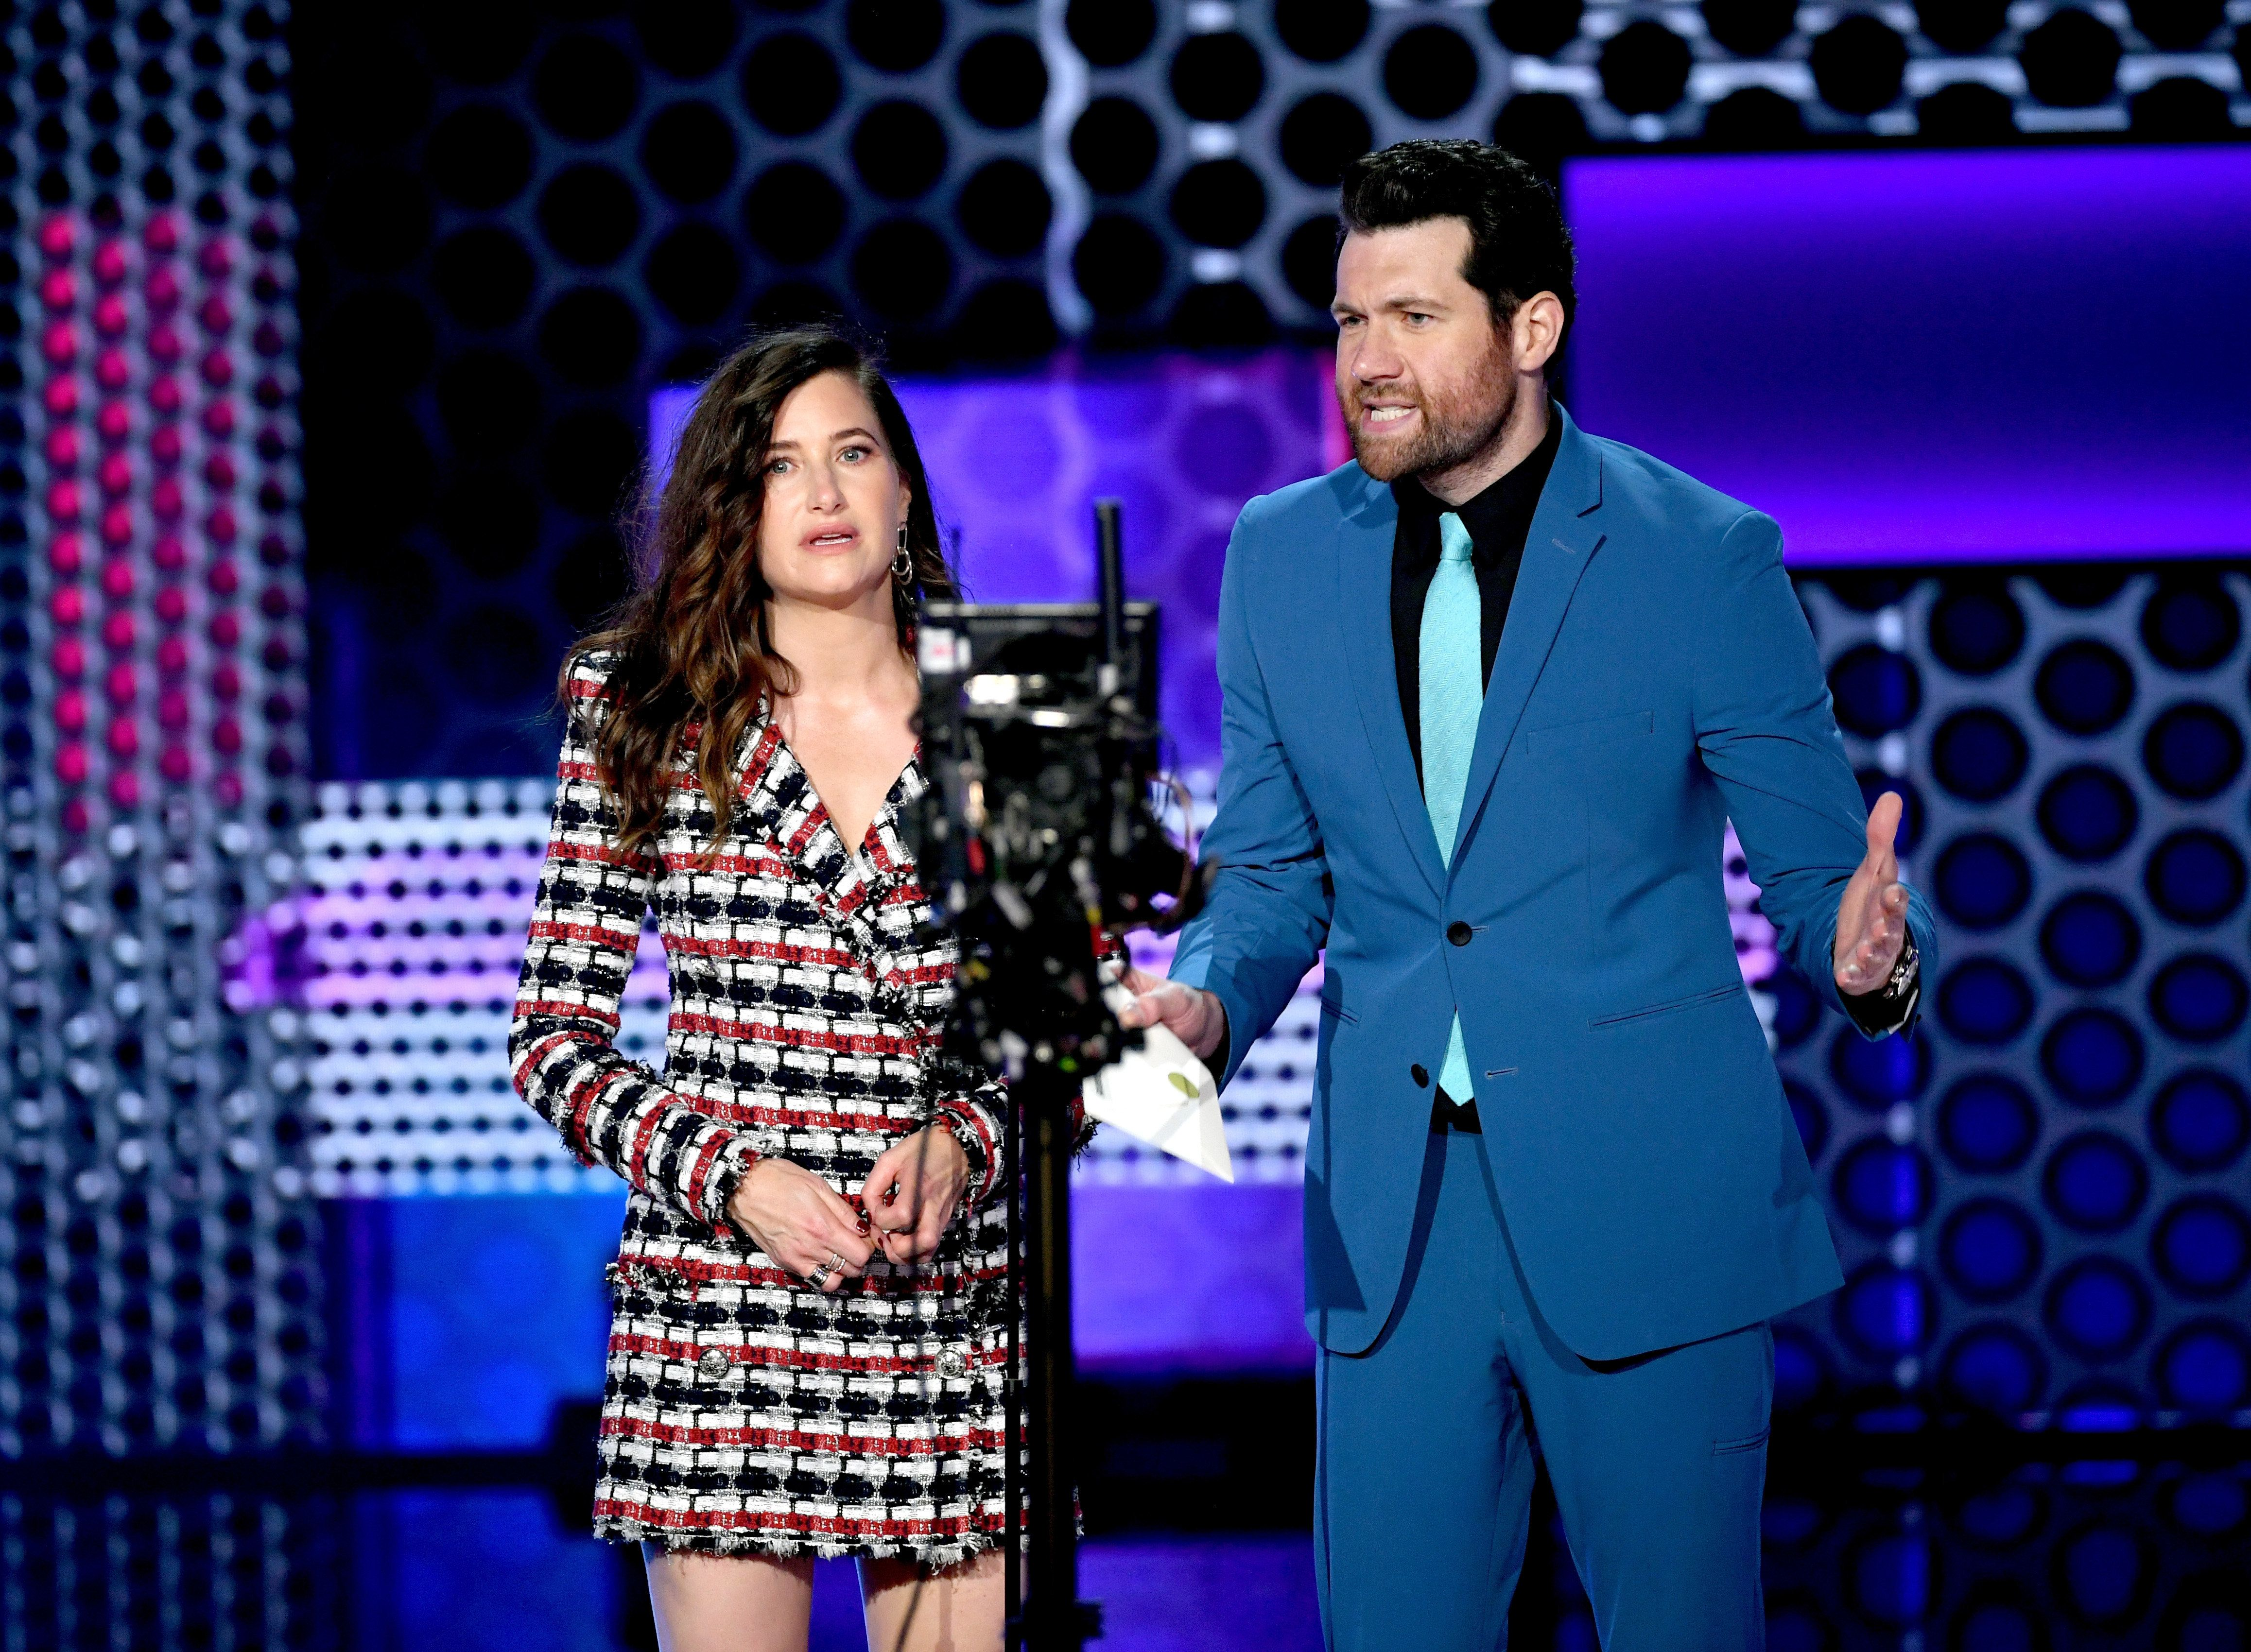 Billy Eichner Goes Off Script With Powerful Voting Message At